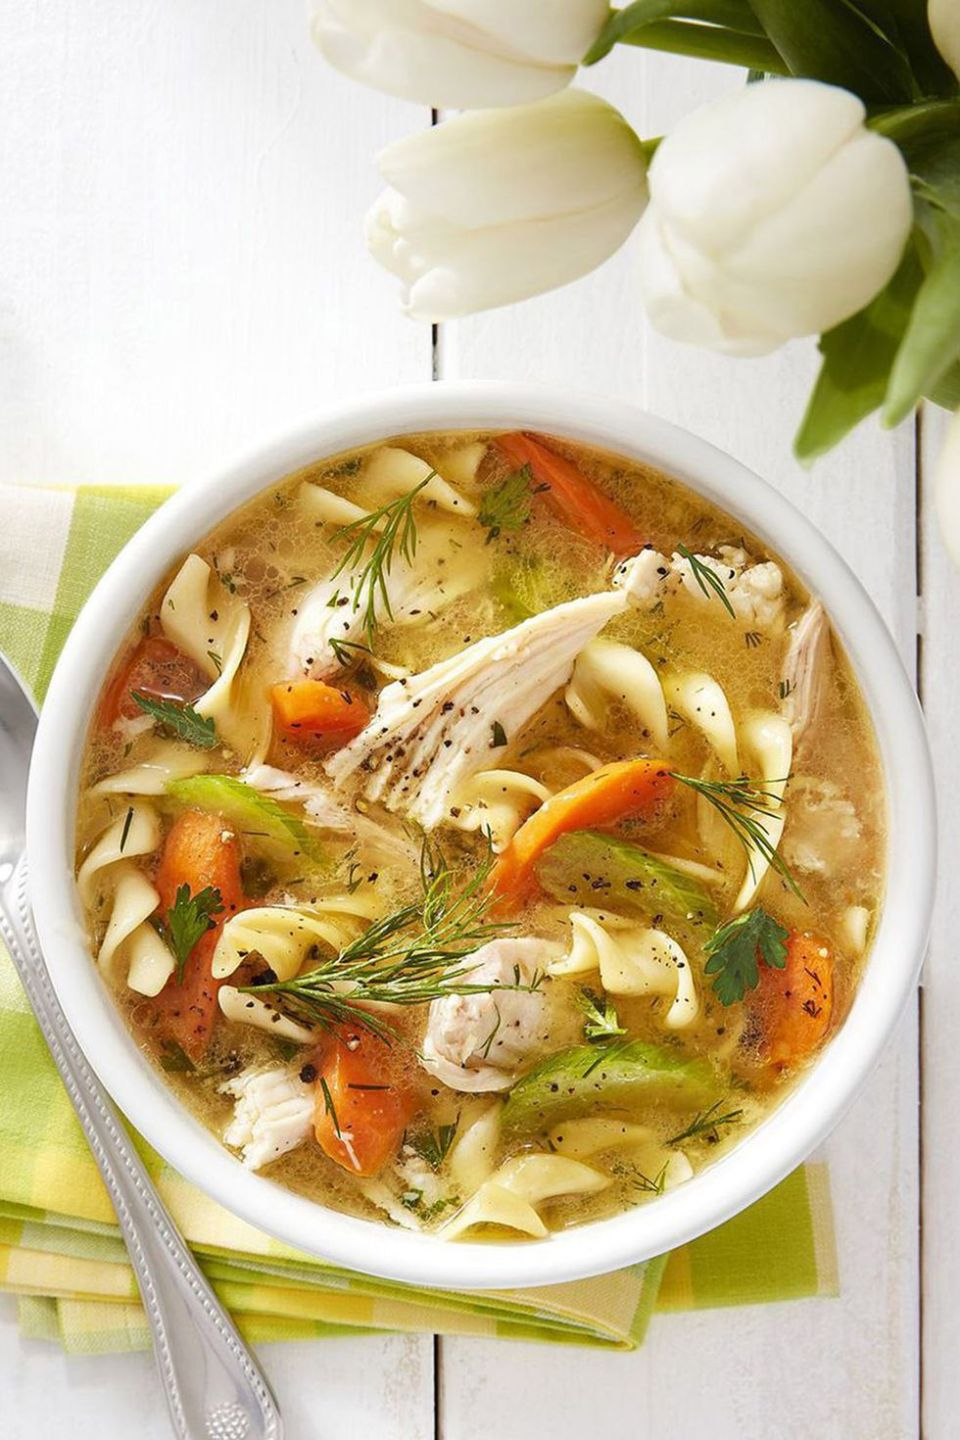 fall-soups-chicken-noodle-1529677050.jpg